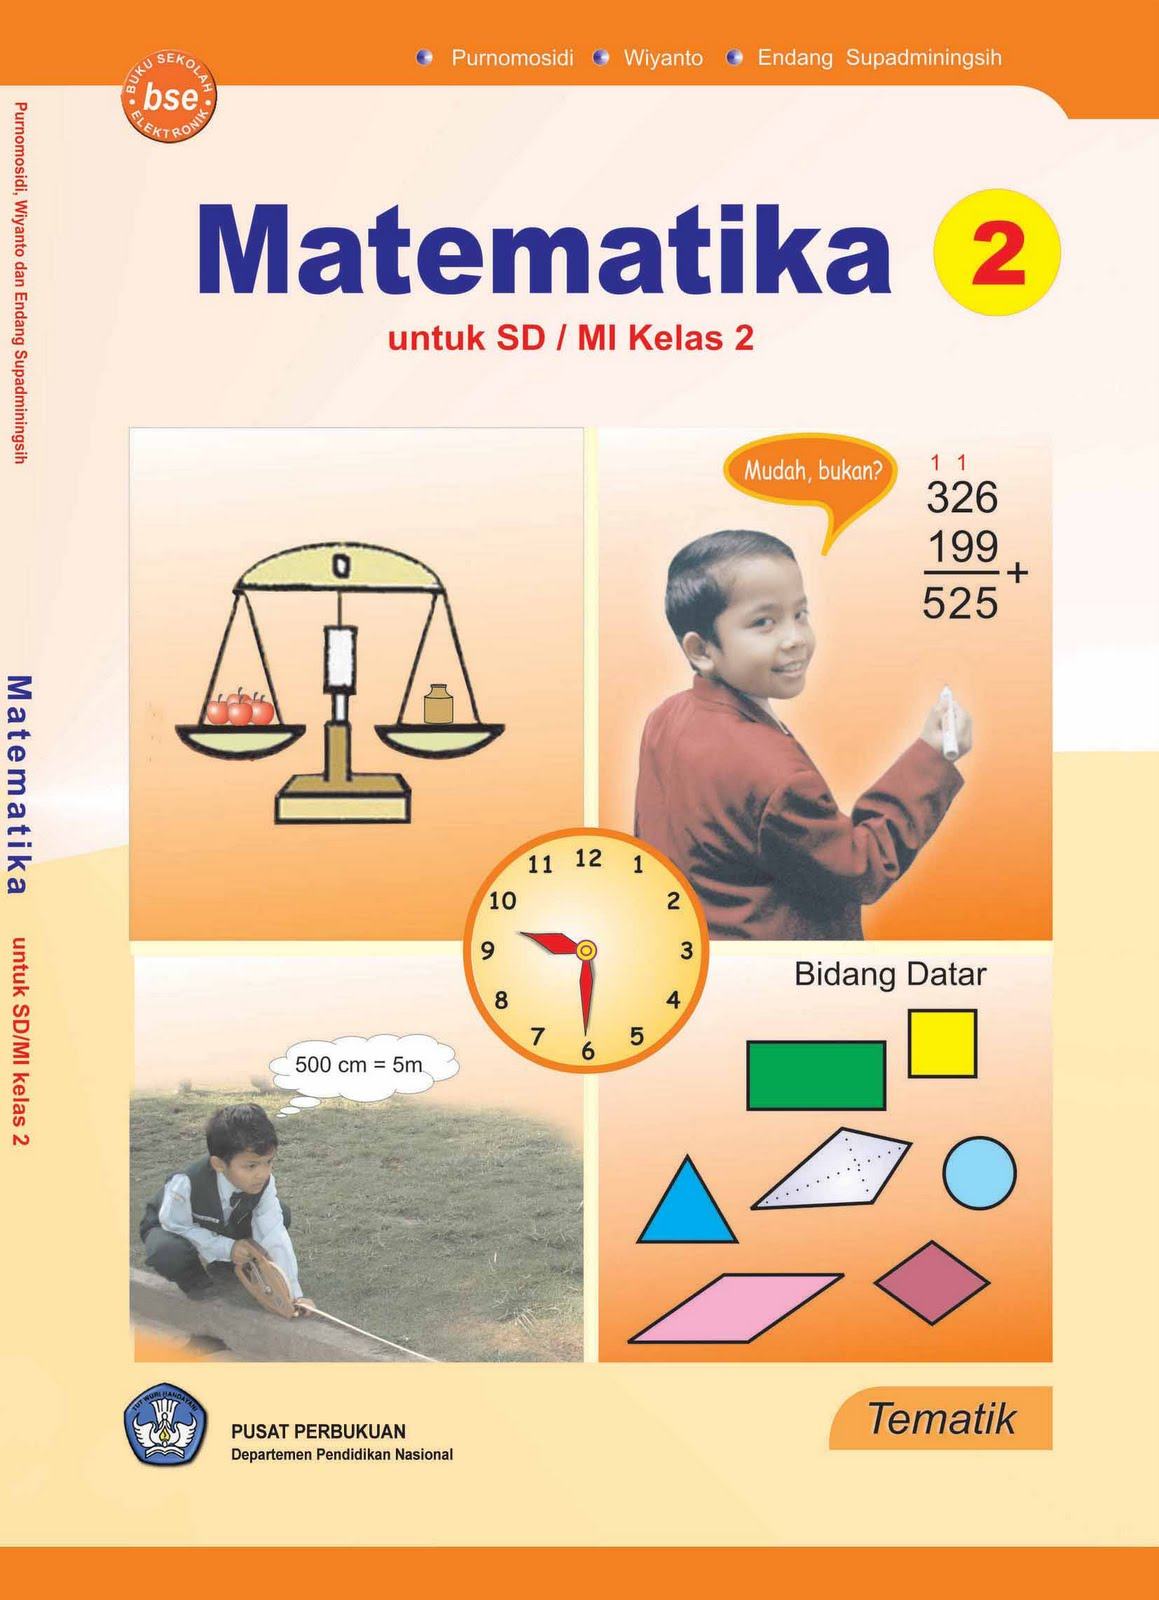 download rpp matematika kelas 2 sd